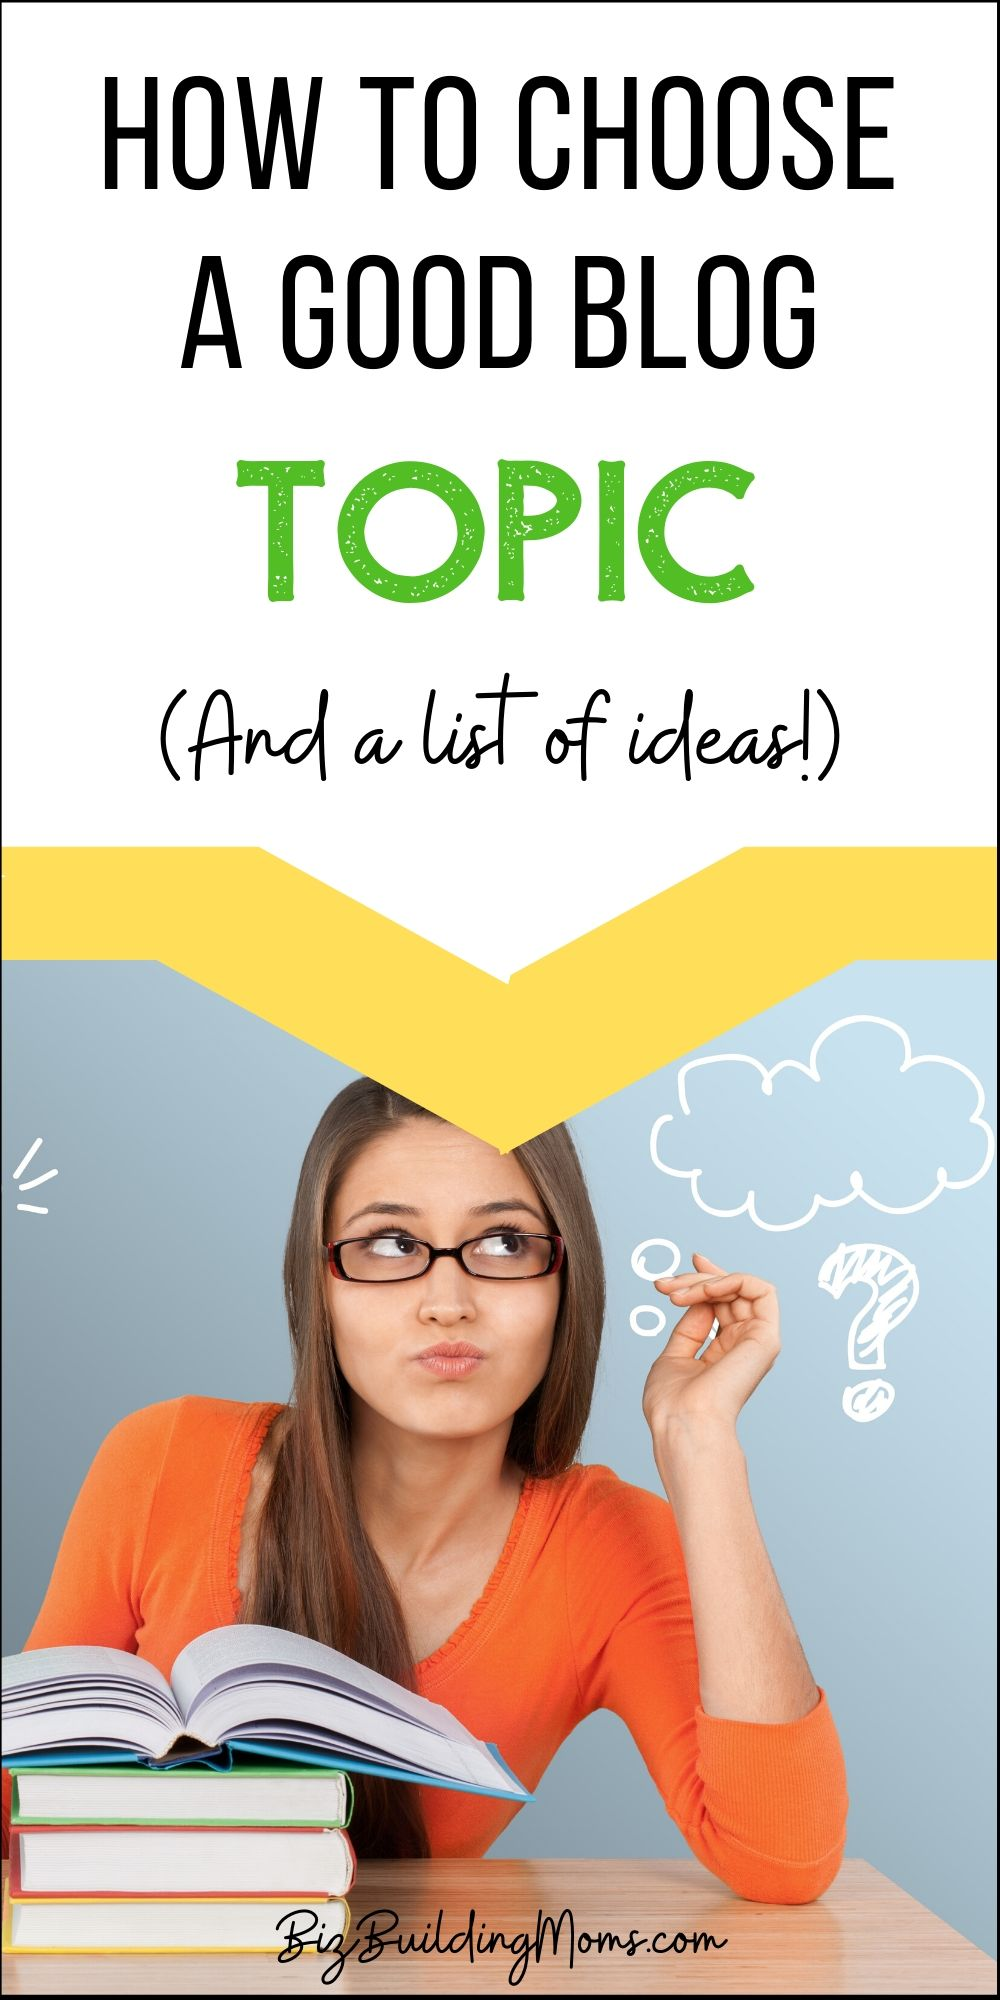 blog topics that make money